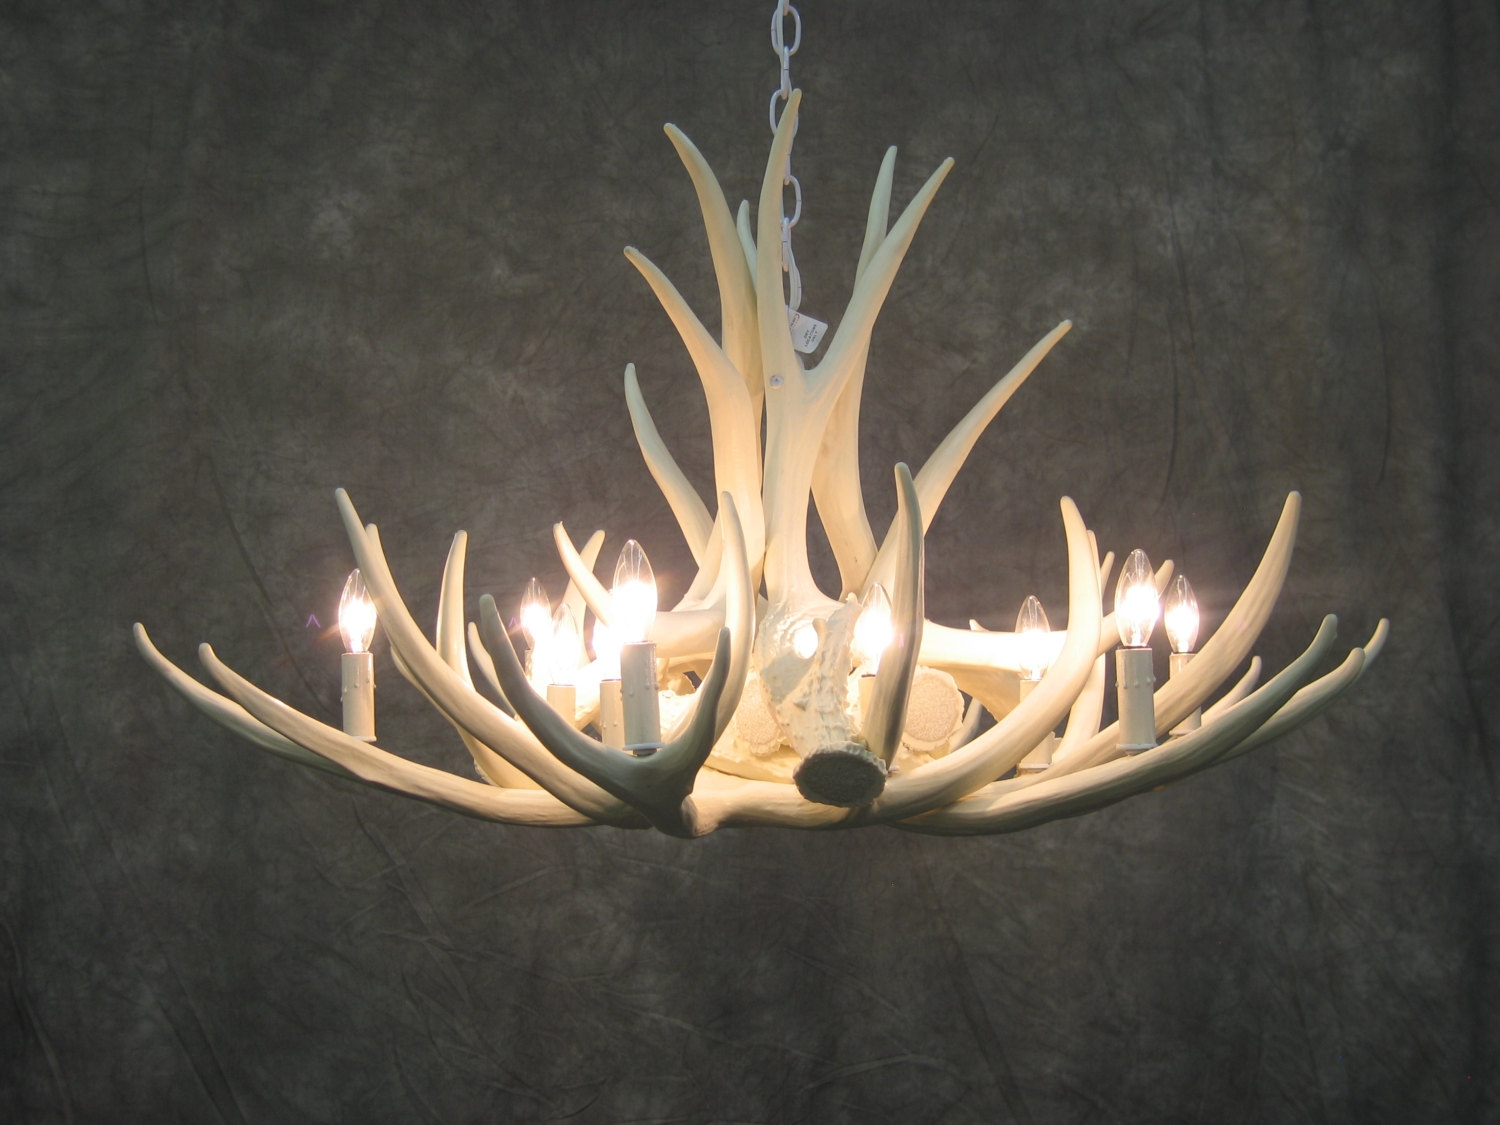 White Antler Chandelier Faux Deer Antler Chandelier D9 In Antler Chandelier (View 5 of 15)